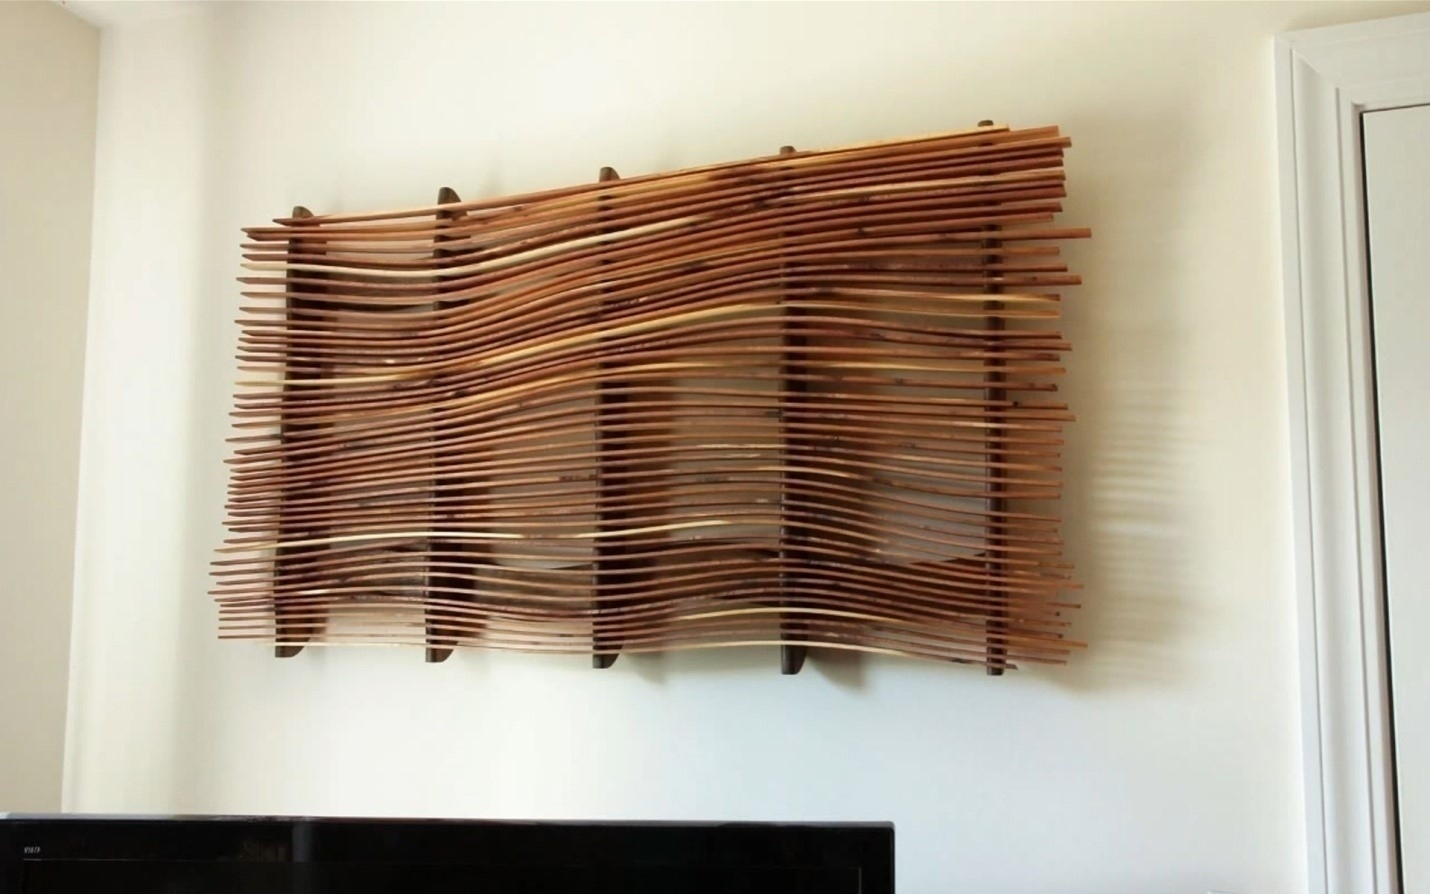 How To Make Wall Art From Scrap Wood | Diy Project – Cut The Wood Throughout Recent Diy Wood Wall Art (View 14 of 20)